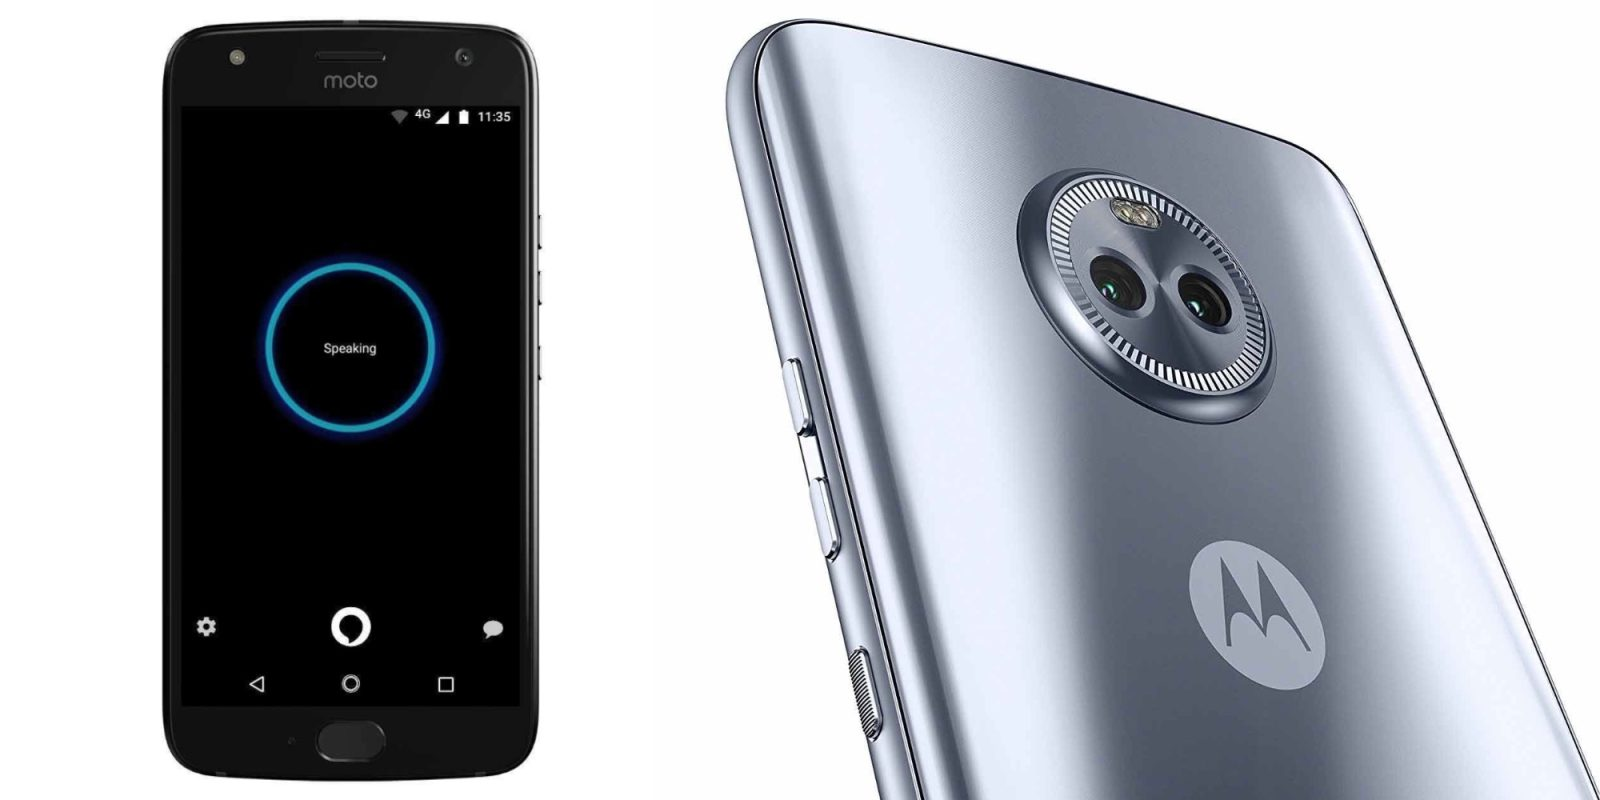 Motorola's Prime Exclusive Moto X4 drops to new Amazon low at $120 (20% off)